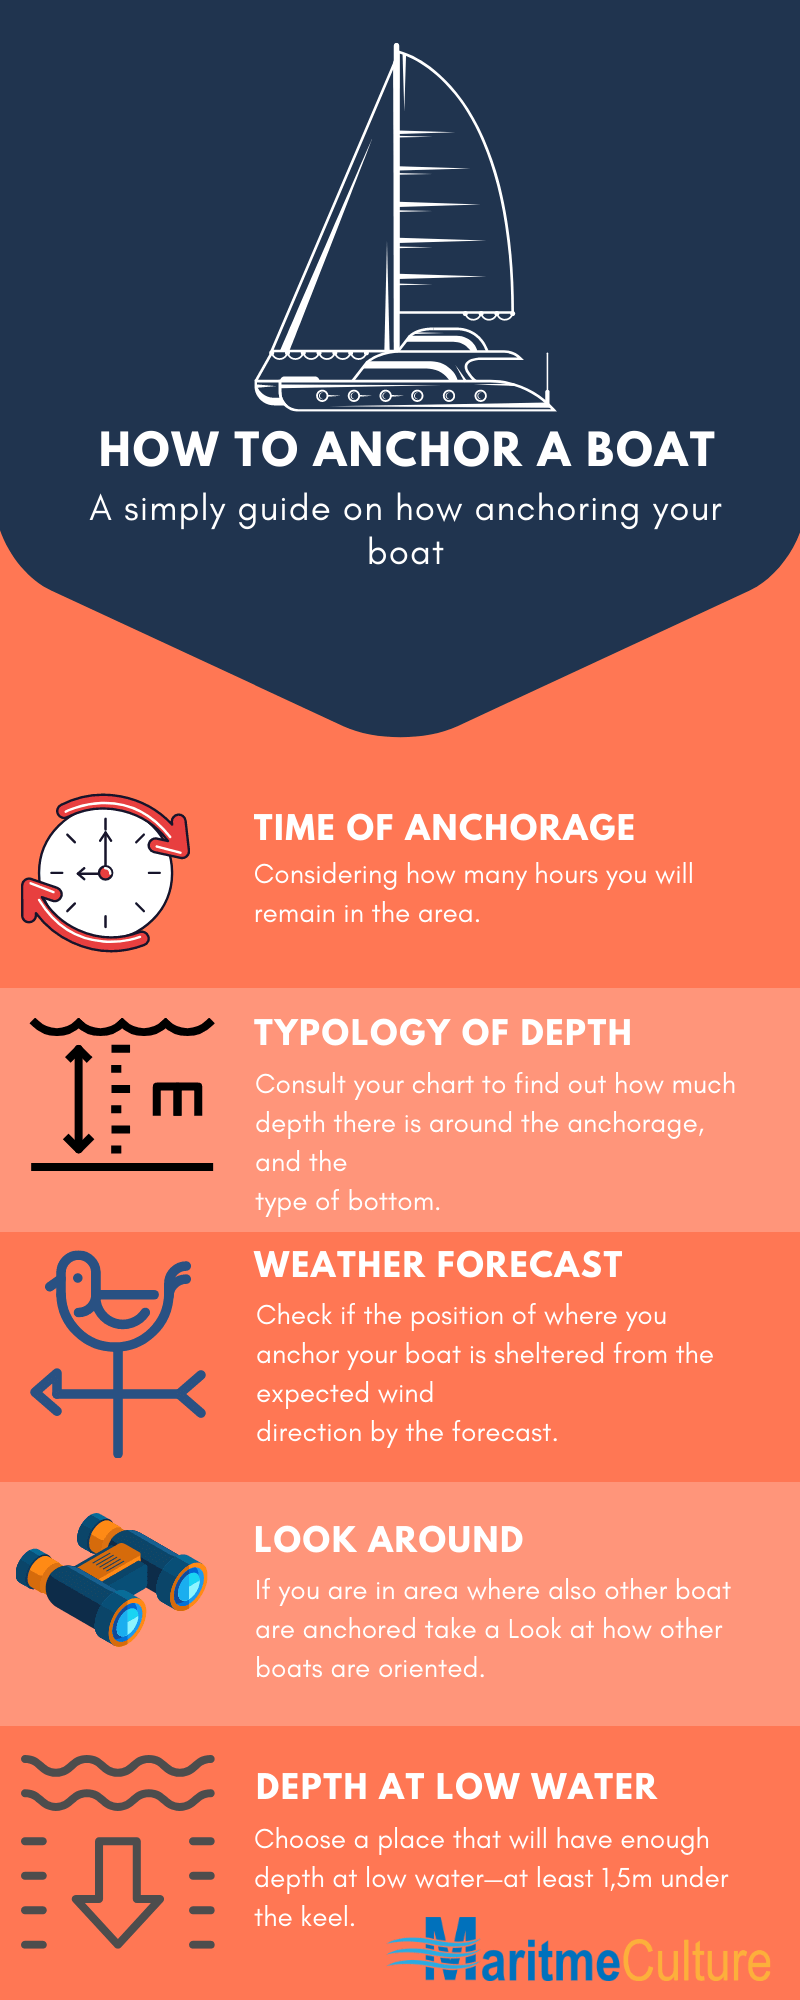 HOW TO ANCHOR A BOAT-infographic